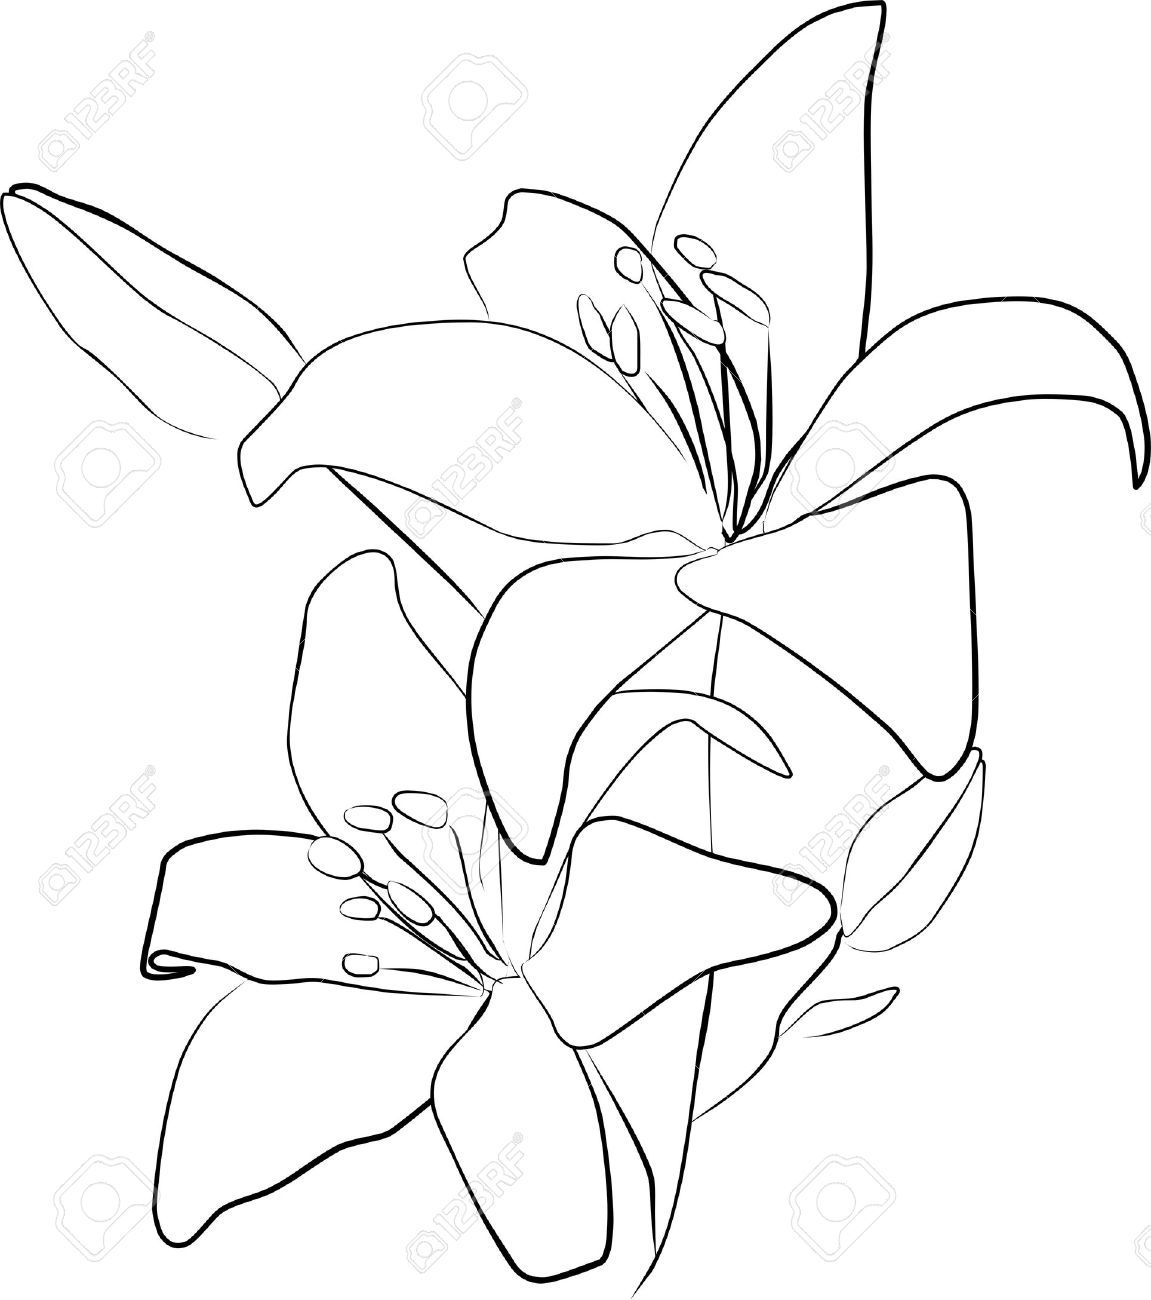 Line Art Lily : Dead lily flower google search ΟΞΩ pinterest